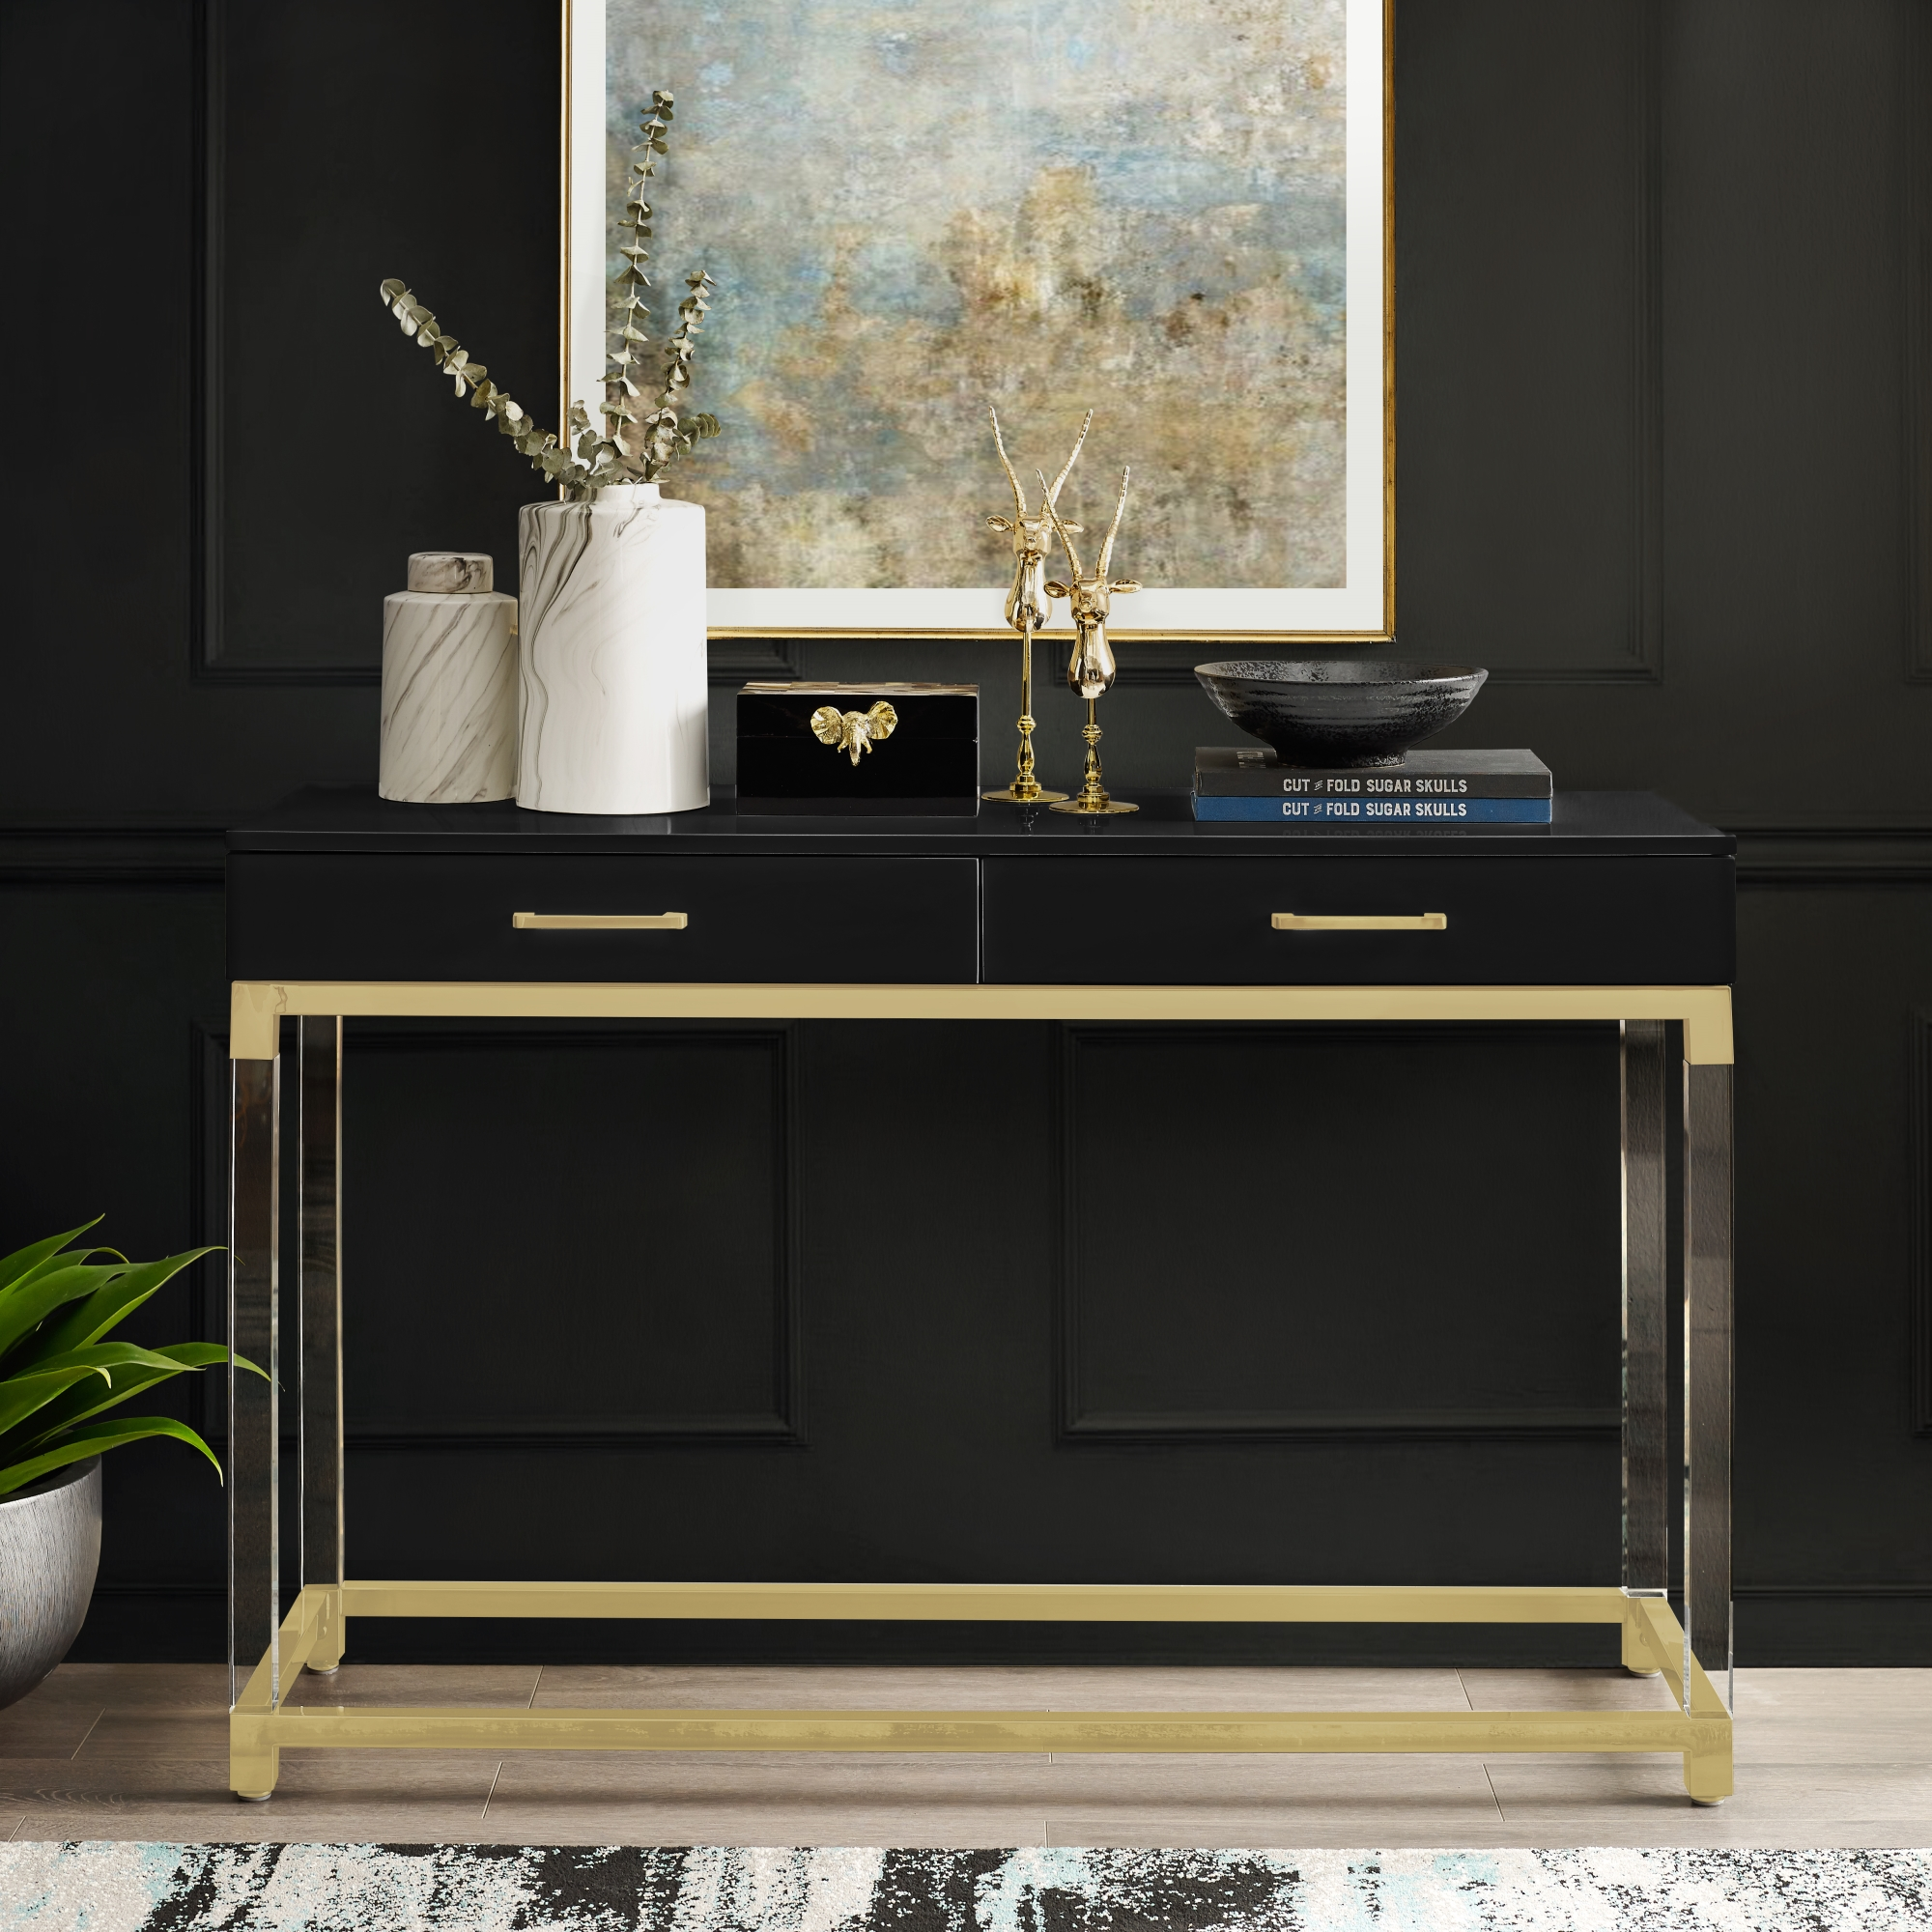 Inspired Home Black/Gold Console Table High Gloss Finish Acrylic Leg, Stainless Steel Base